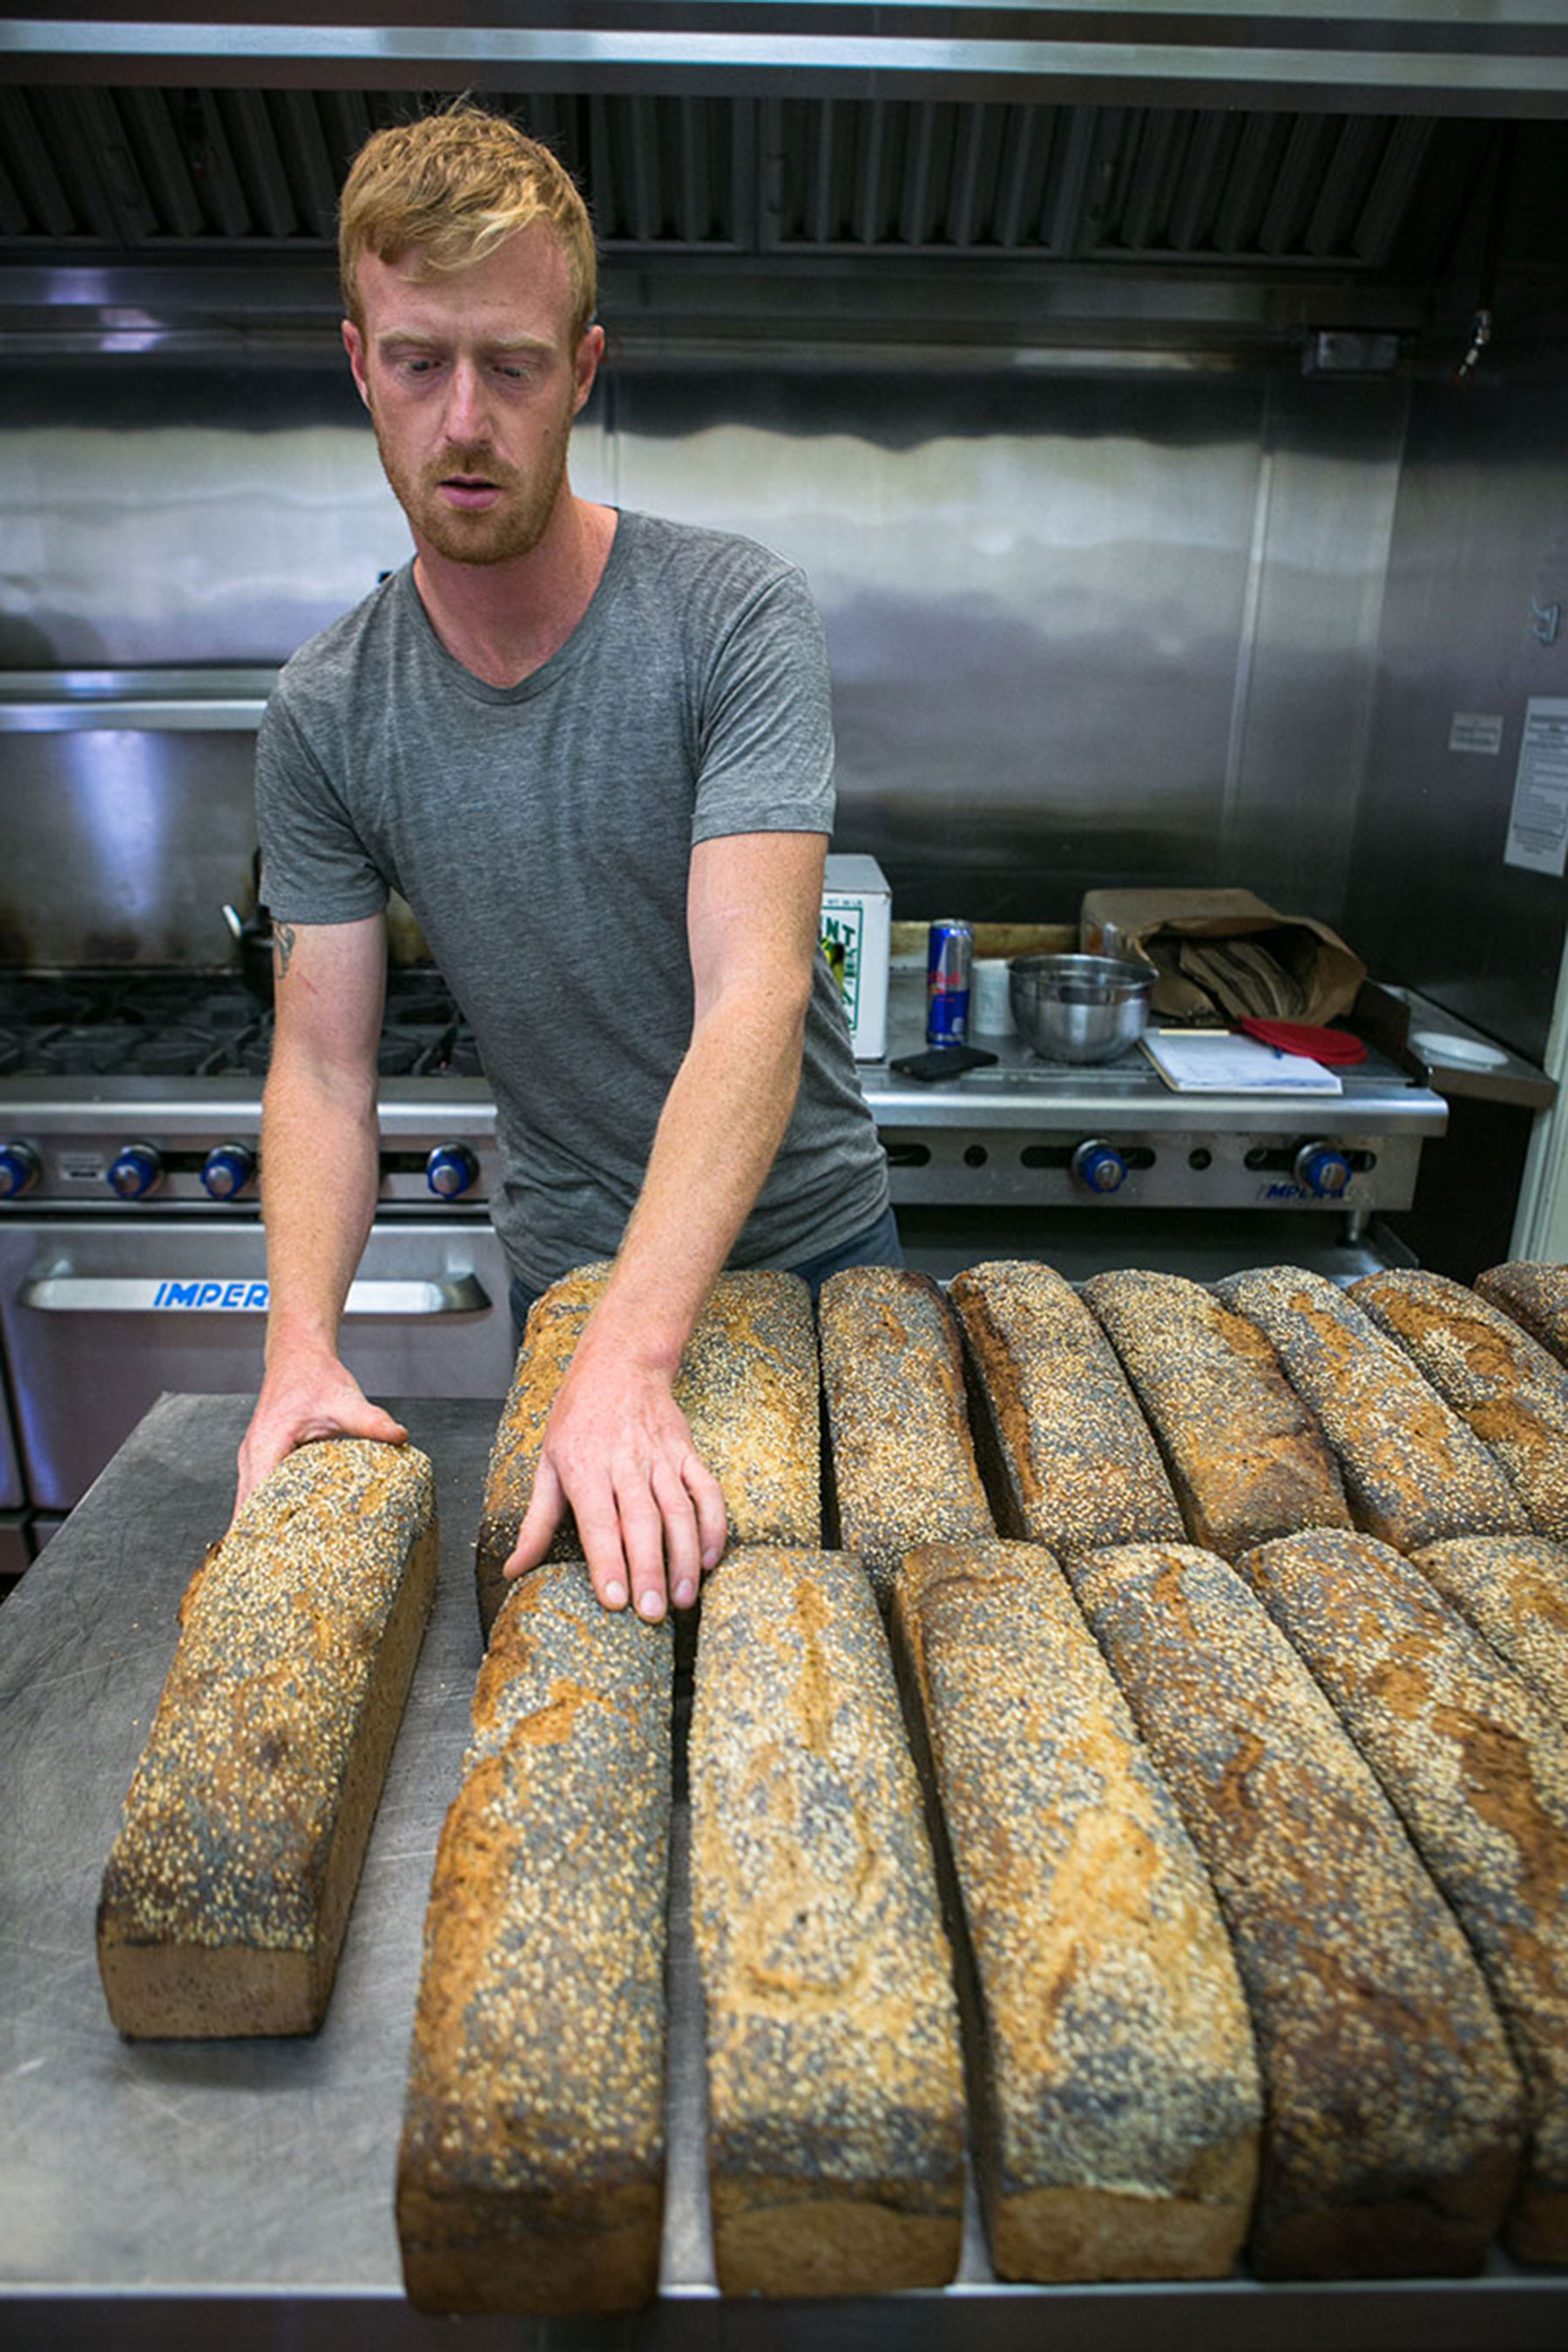 Eliot with the finished baked loaves